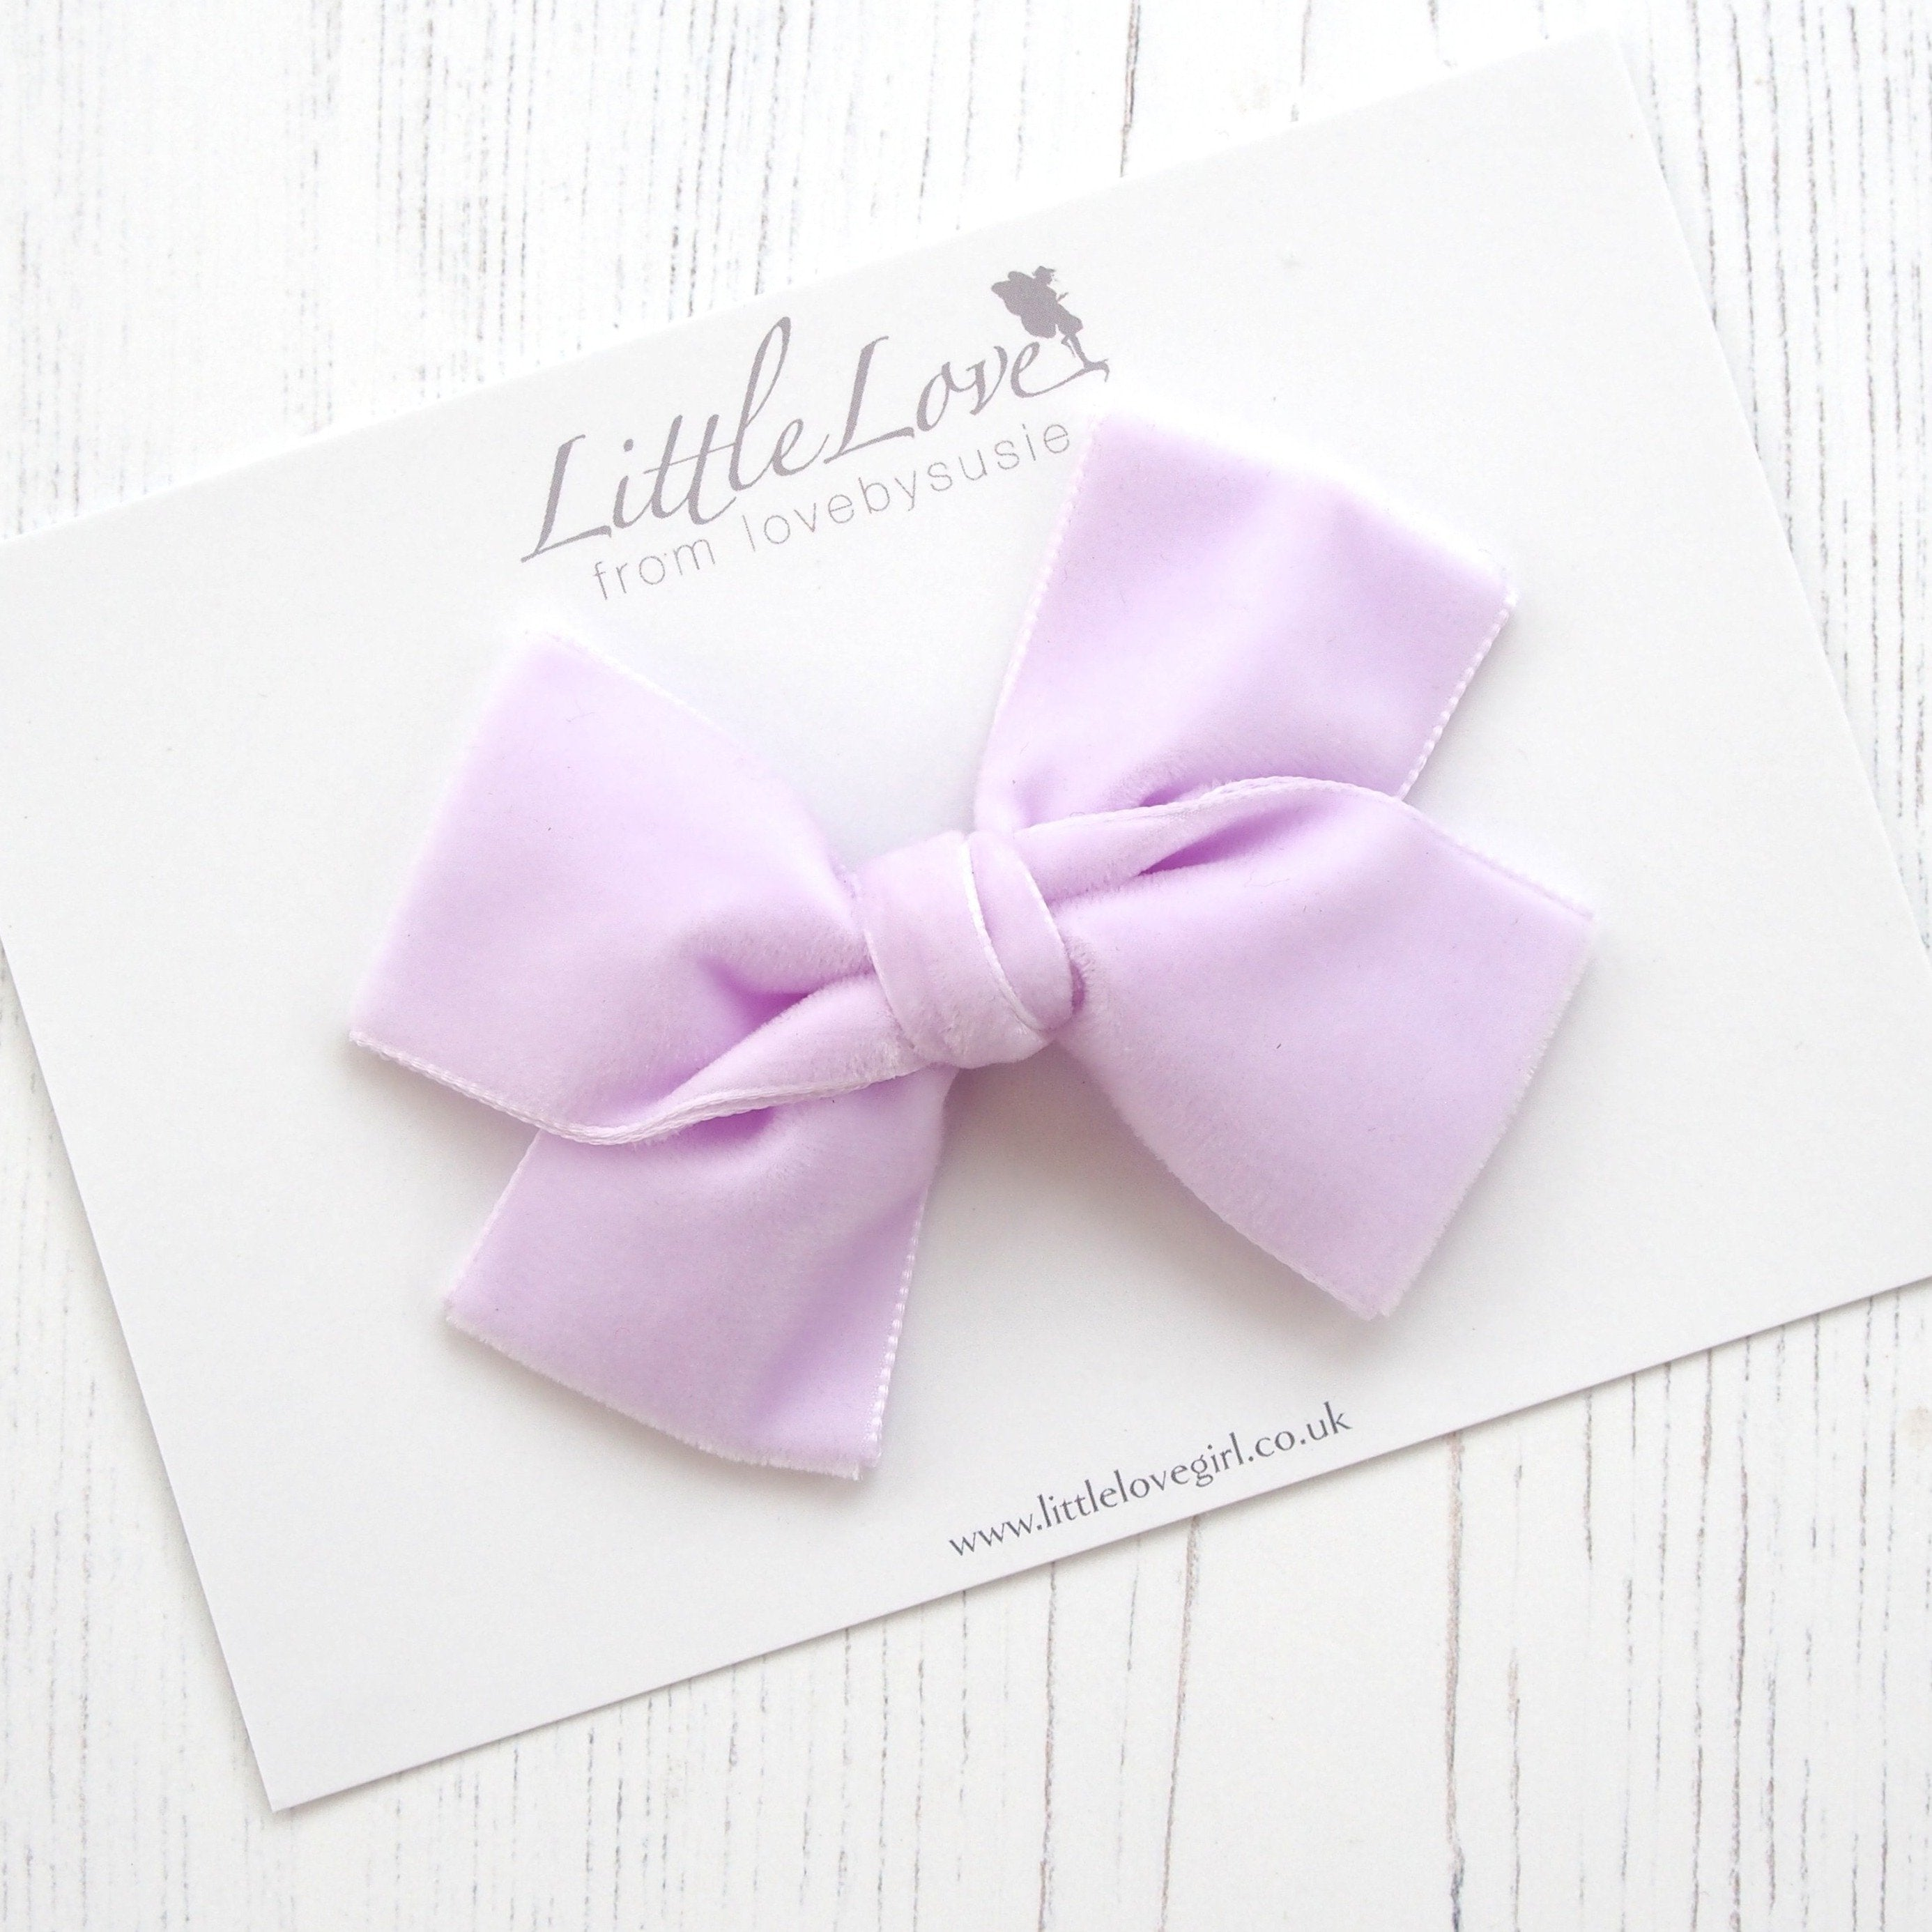 Little Love luxury velvet bow hair clip in pale lilac, velvet bow hair clip, large velvet bow uk, lilac velvet hair bow, lilac  bow hair clip, pale lilac velvet bow, violet velvet hair bow, oversize velvet bow, velvet hair clips, velvet hair bows, velvet bow for little girls, velvet baby bow headband